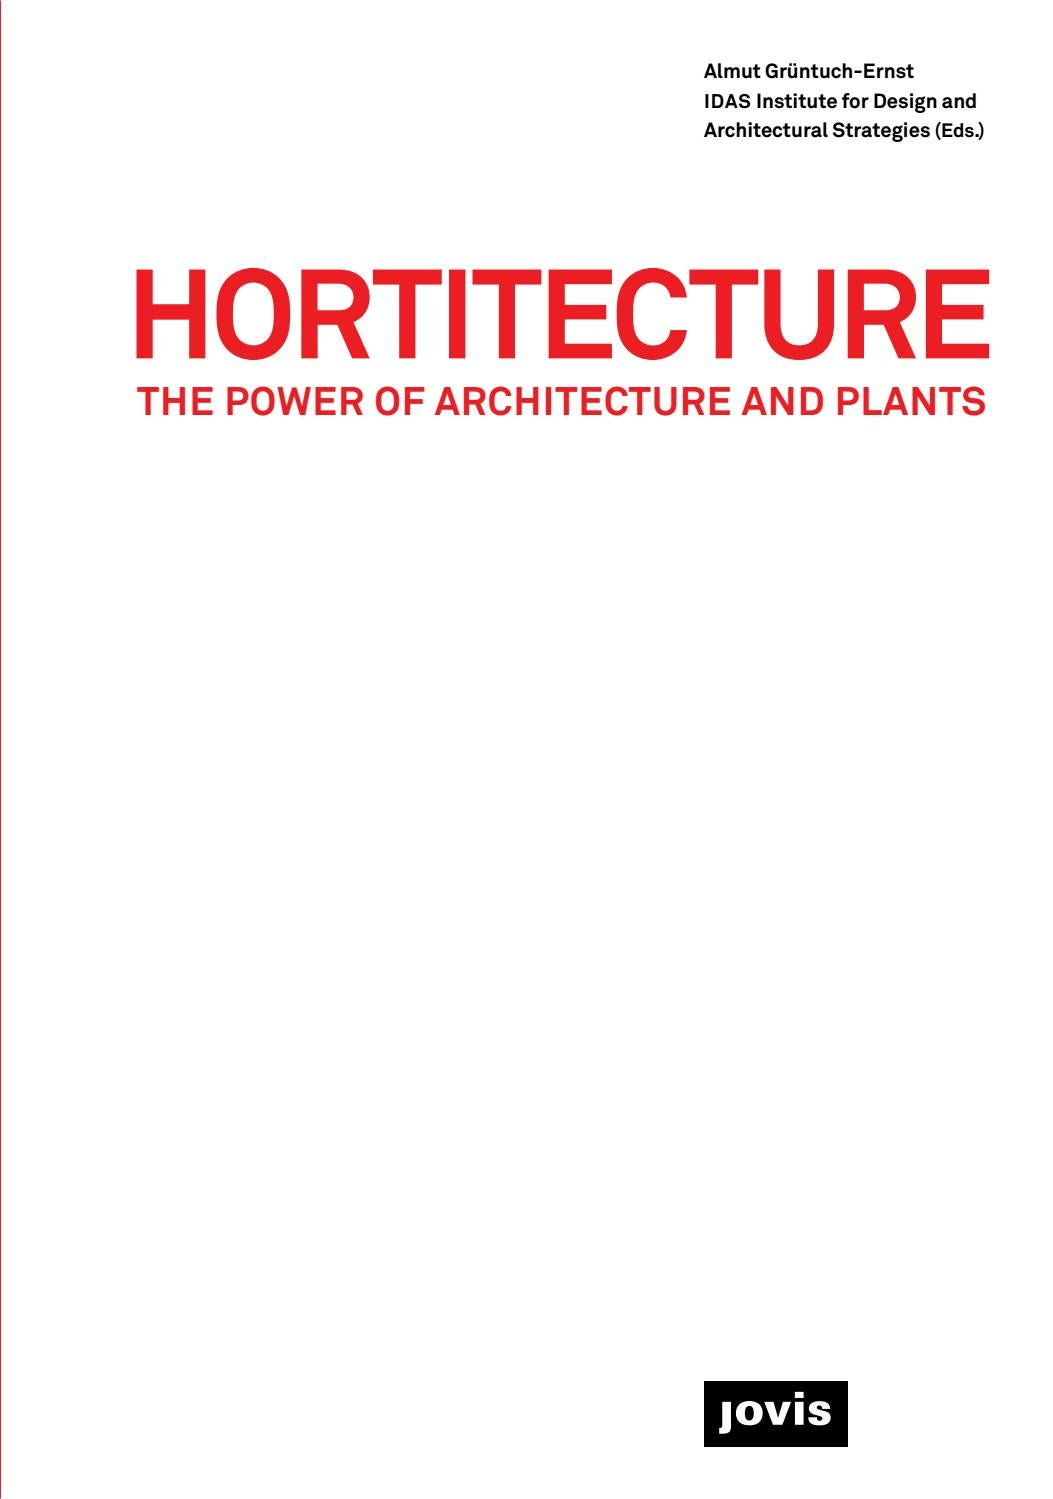 France Habitation Service Client Hortitecture By Detail Issuu